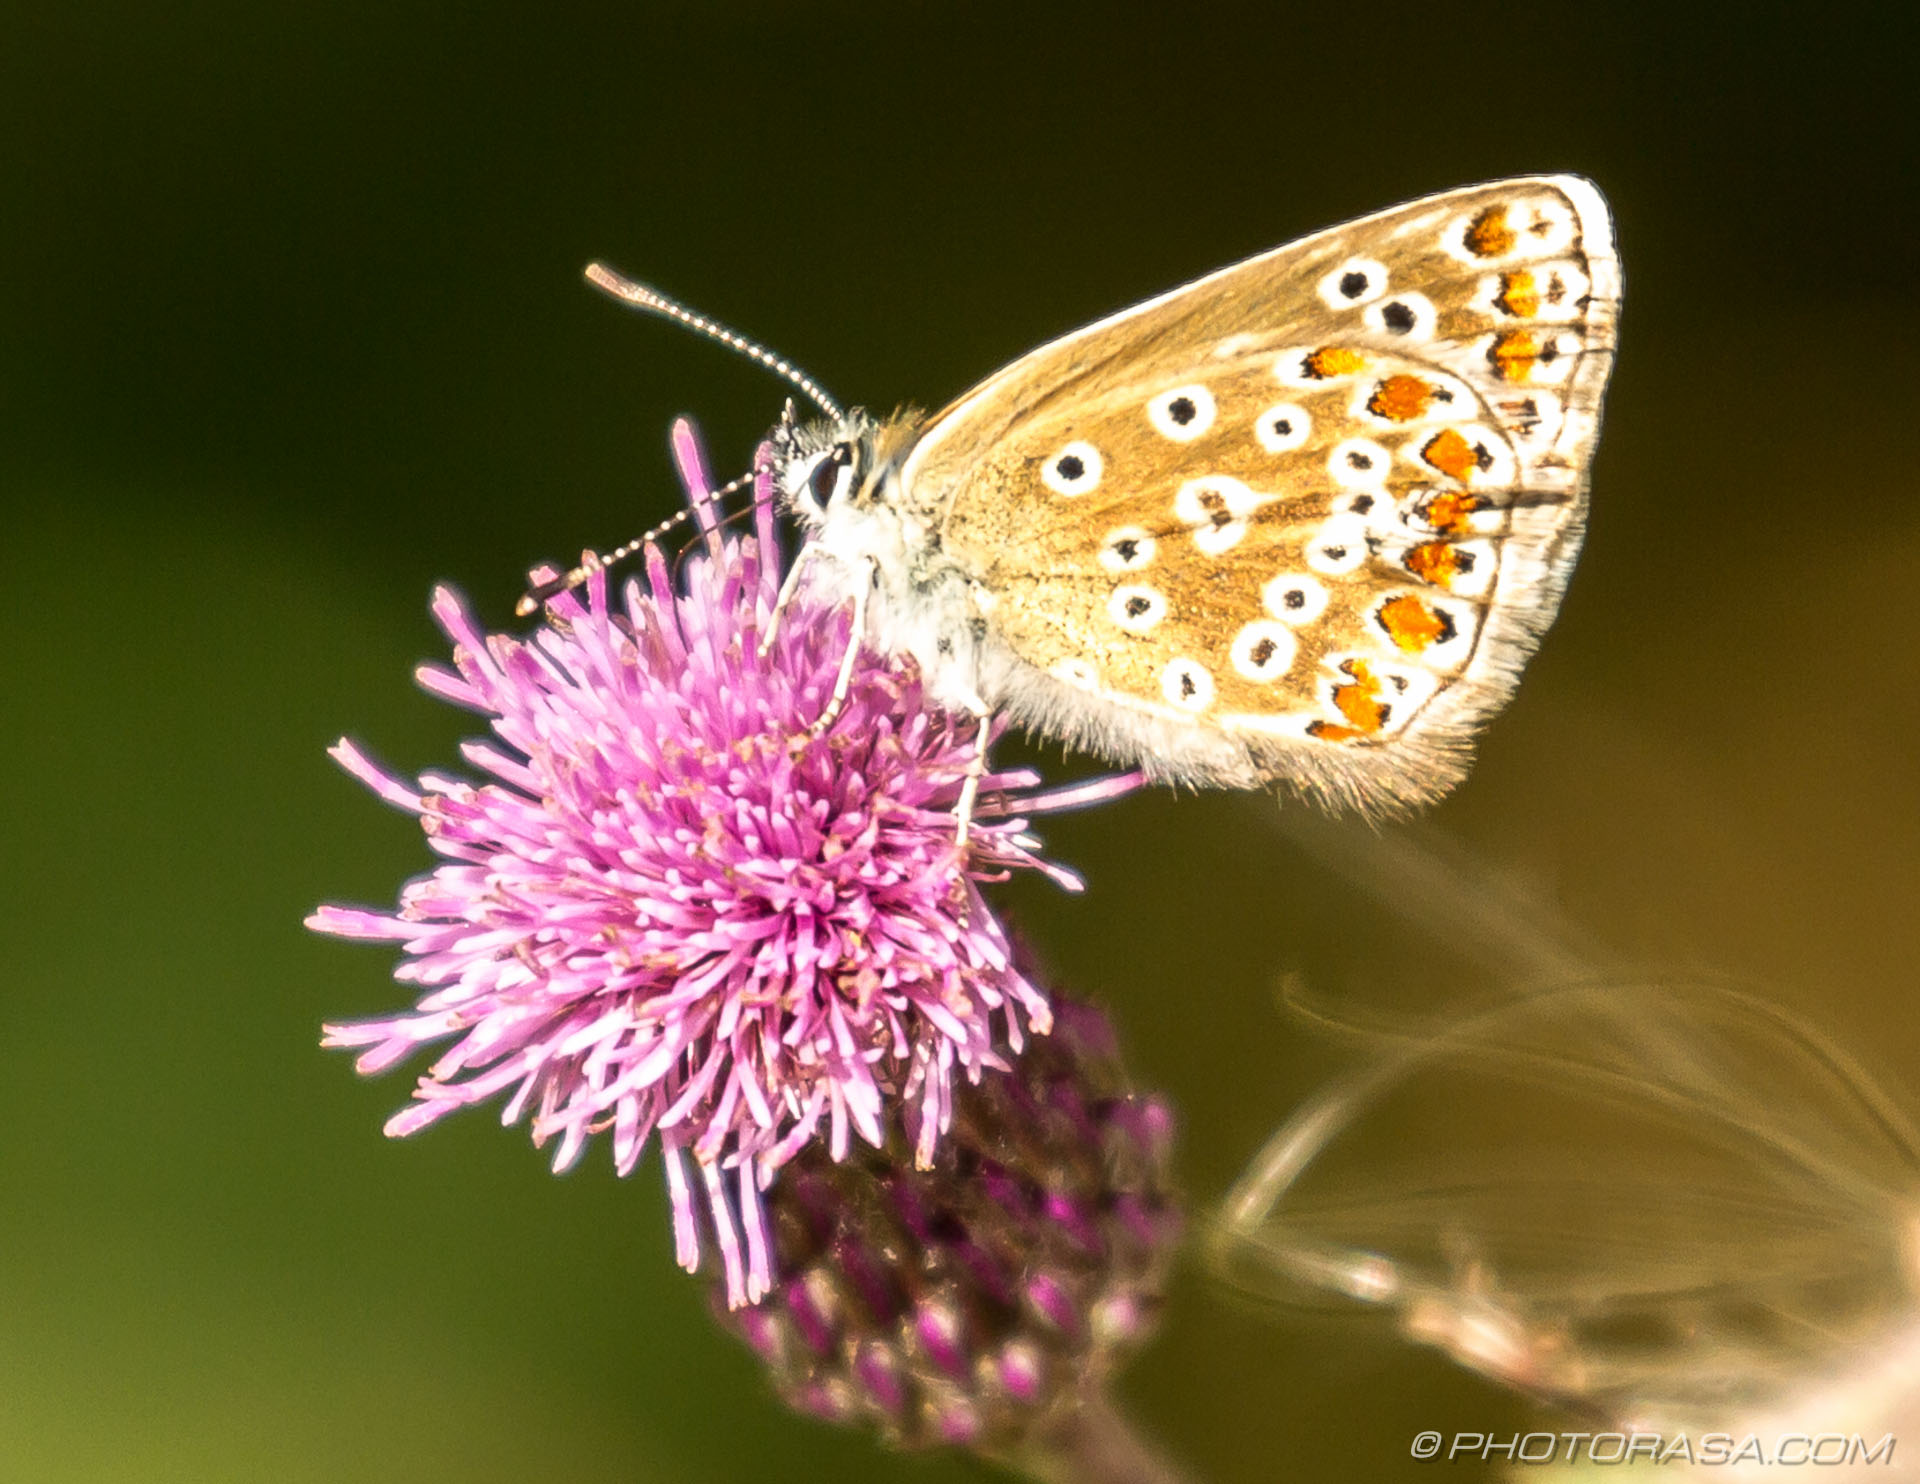 https://photorasa.com/common-blue-butterfly/on-a-pink-flower/